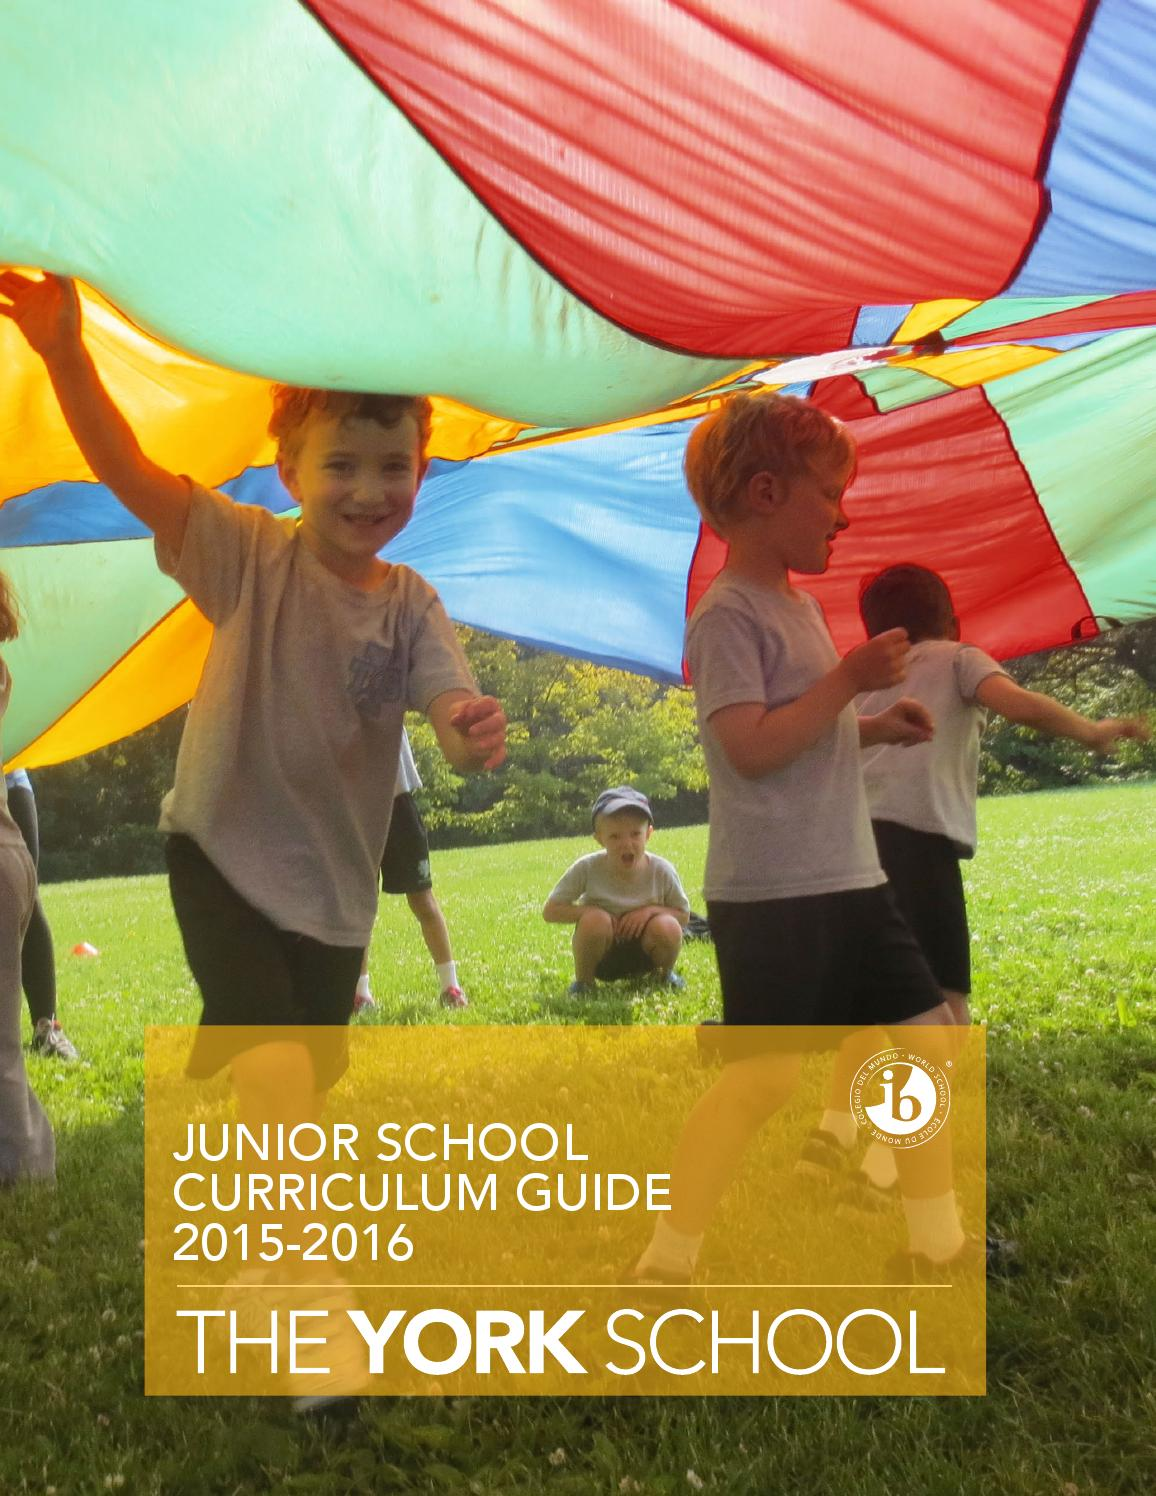 curriculum guide in english 2016